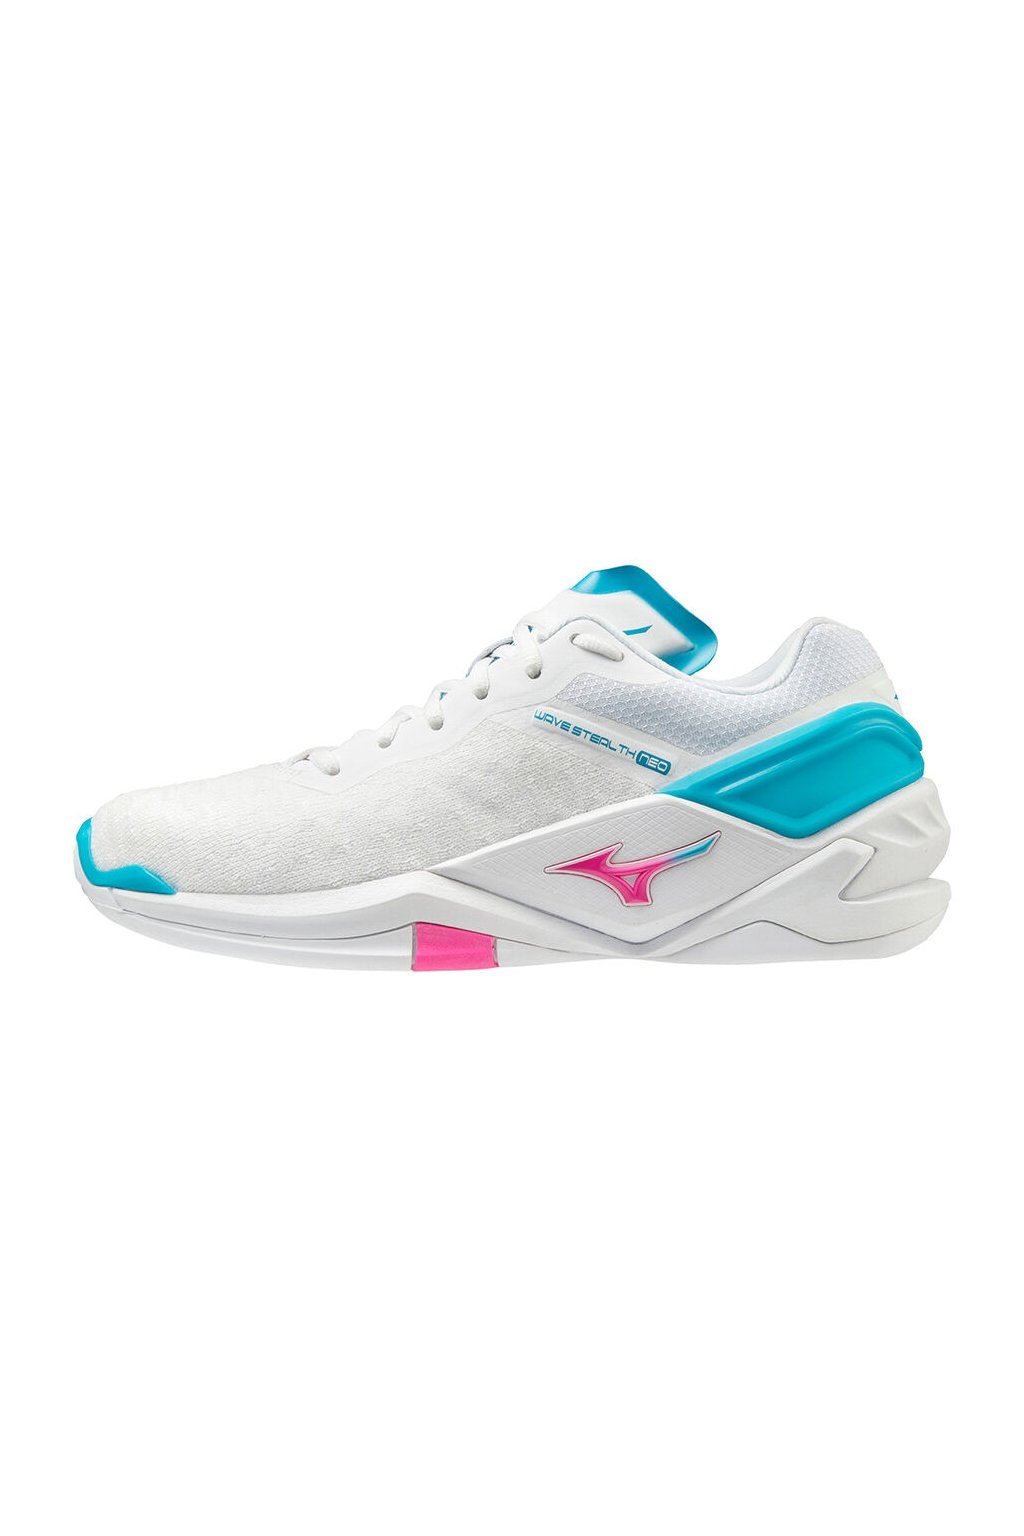 WAVE STEALTH NEO / White/PinkGlo/BlueAtoll